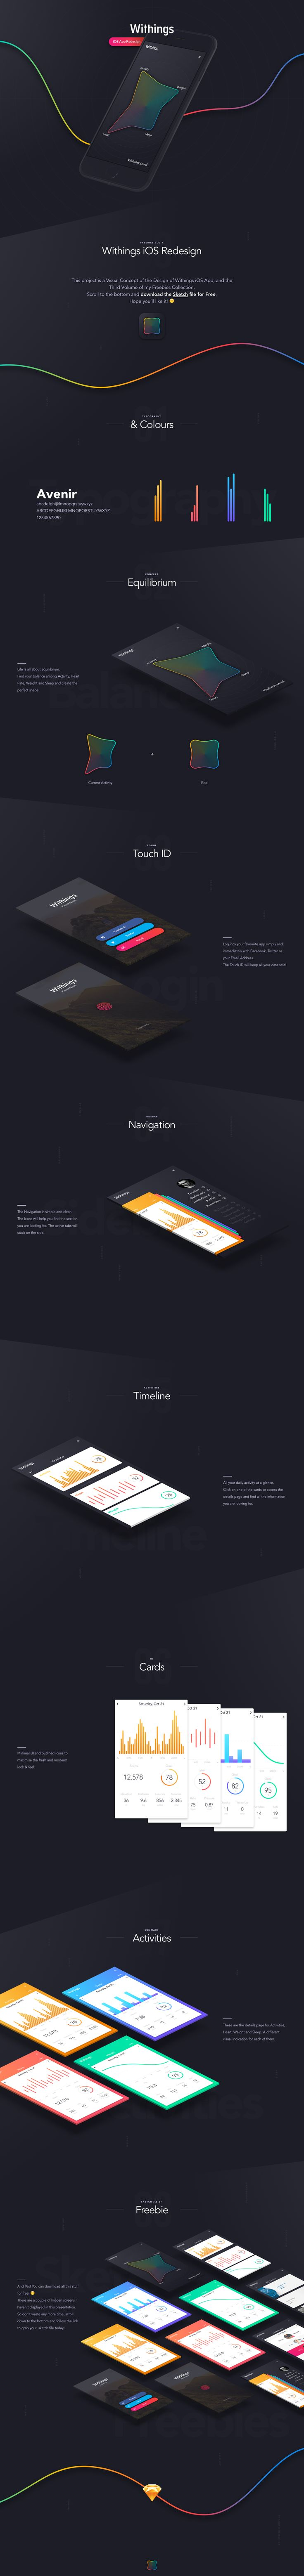 This project is a Visual Concept of the Design of Withings iOS App, and the Third Volume of my Freebies Collection. Scroll to the bottom and download the Sketch file for Free.Hope you'll like it! http://freebies.lorenzobocchi.com/